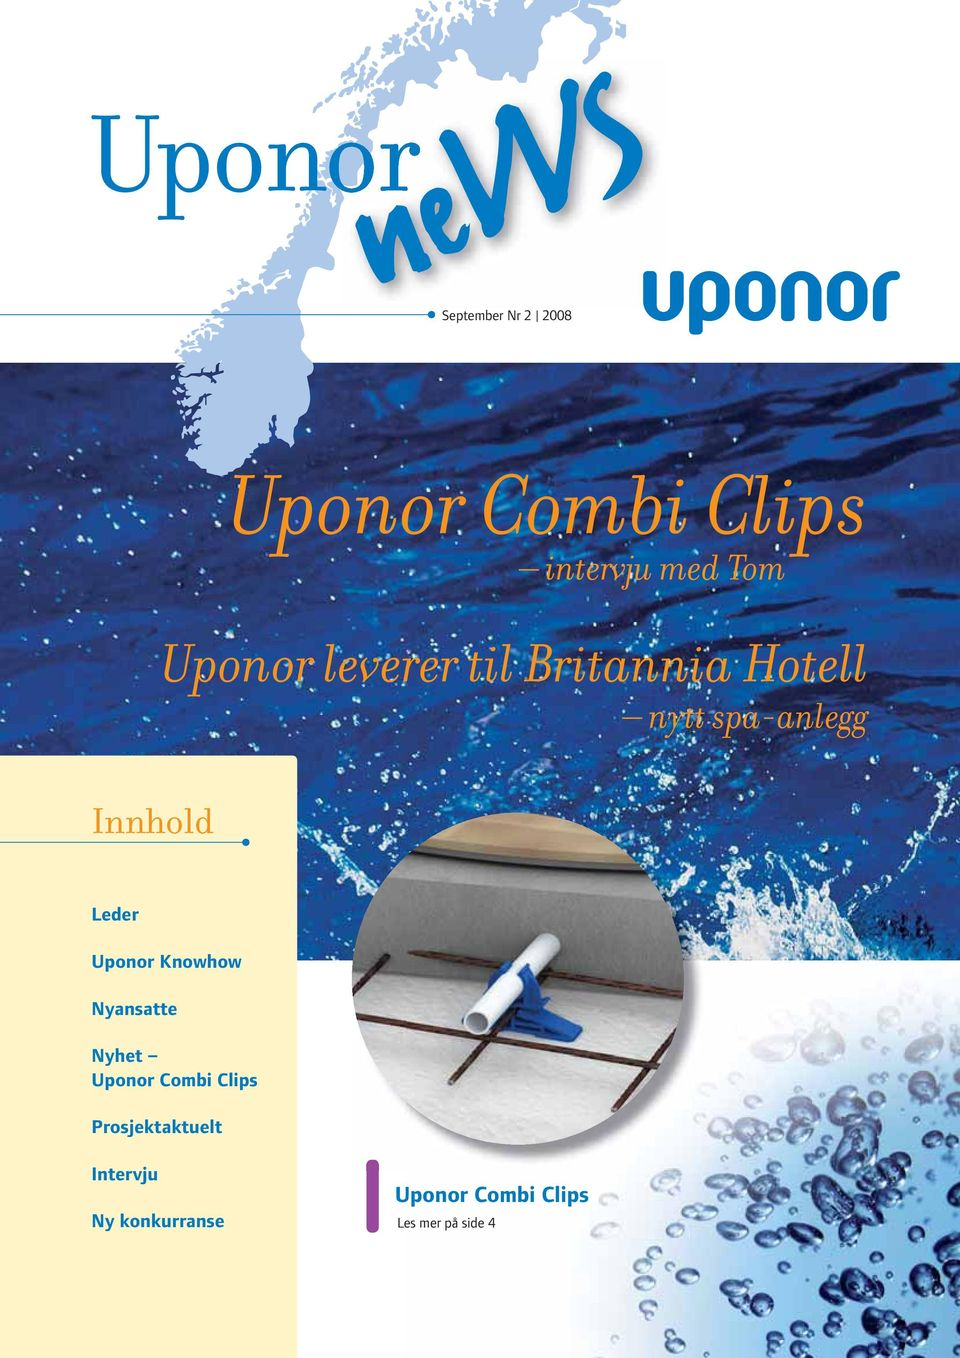 Leder Uponor Knowhow Nyansatte Nyhet Uponor Combi Clips